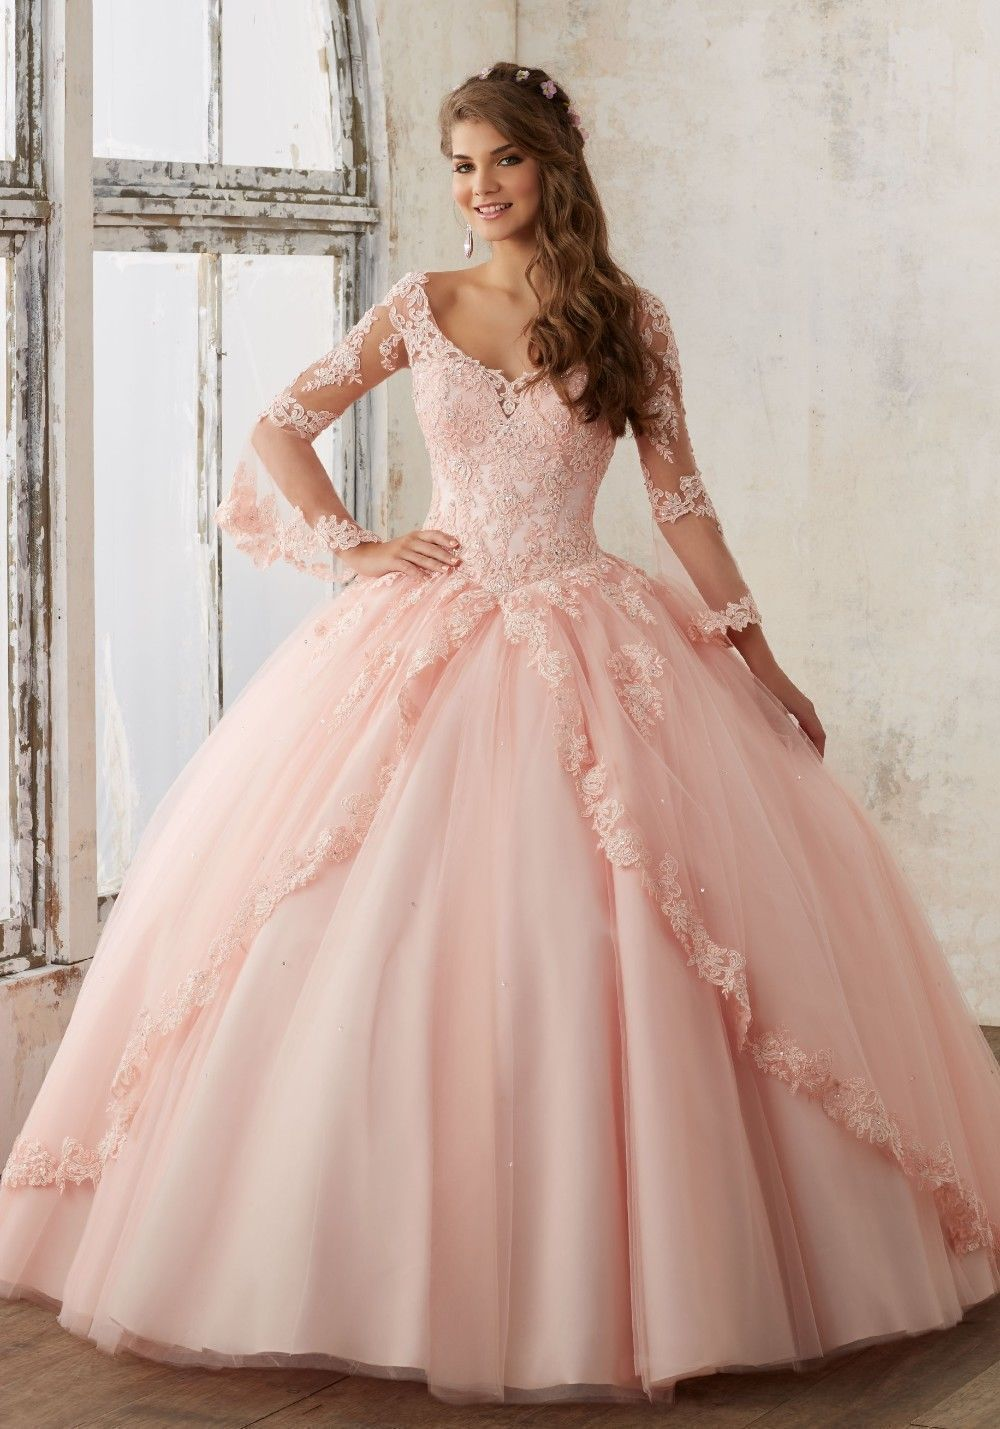 Awesome Amazing Long Bell Sleeves Dresses Ball Gown Sweet 16 Dress ...